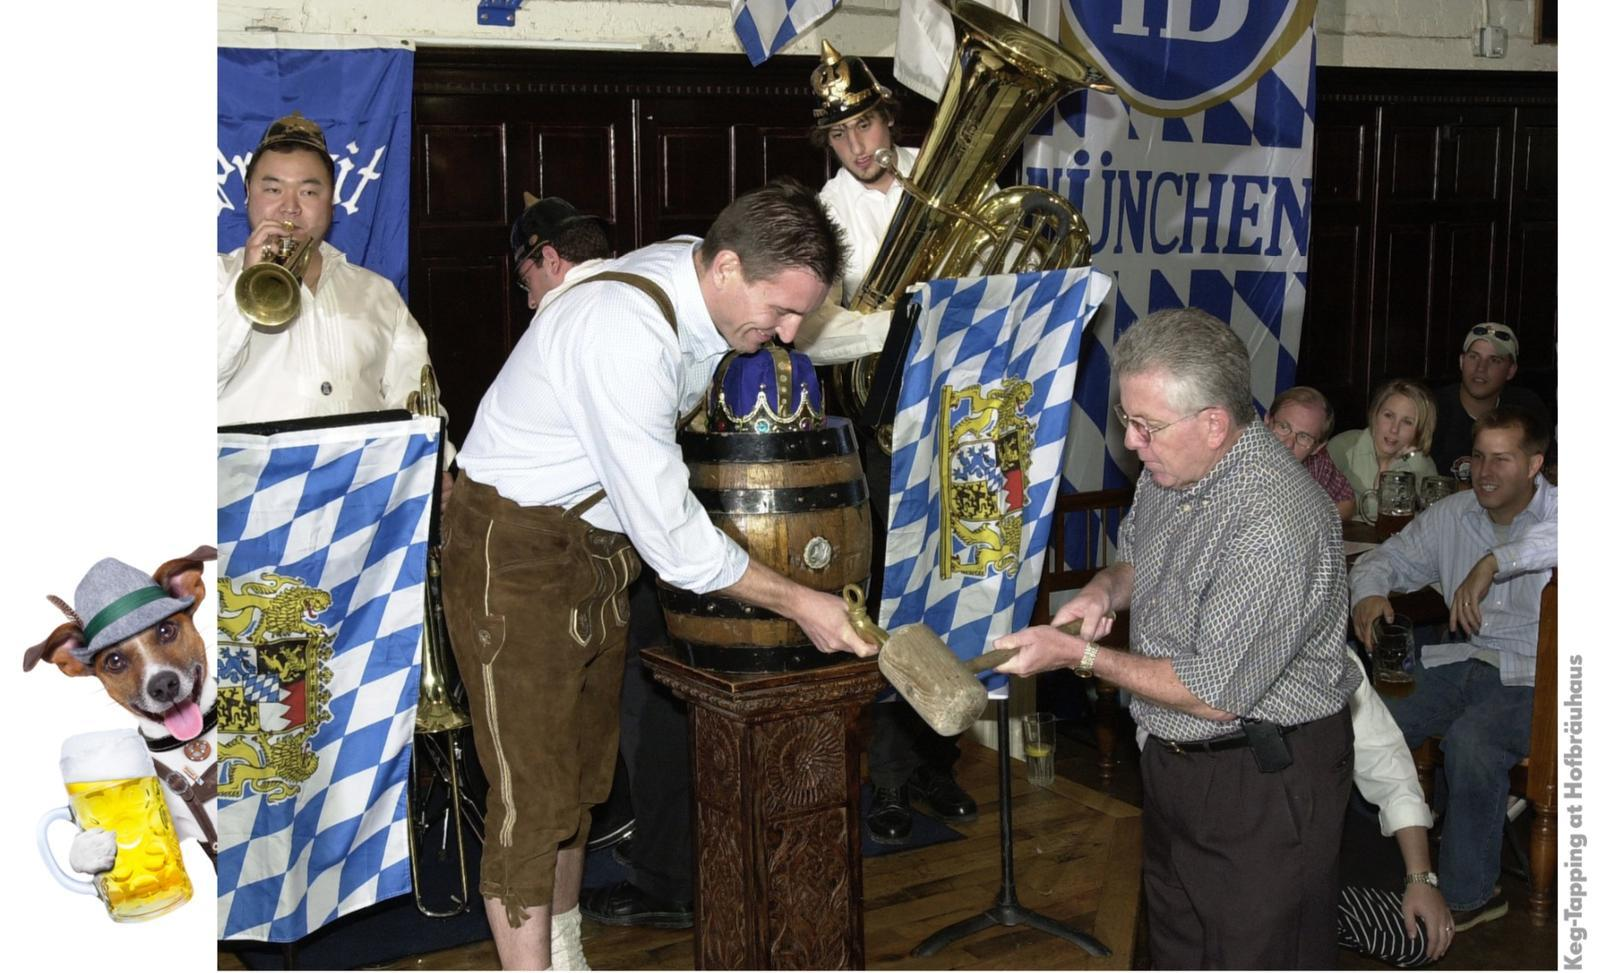 Prost! Cincinnati Offers Authentic German Traditions at Hofbr�uhaus Newport